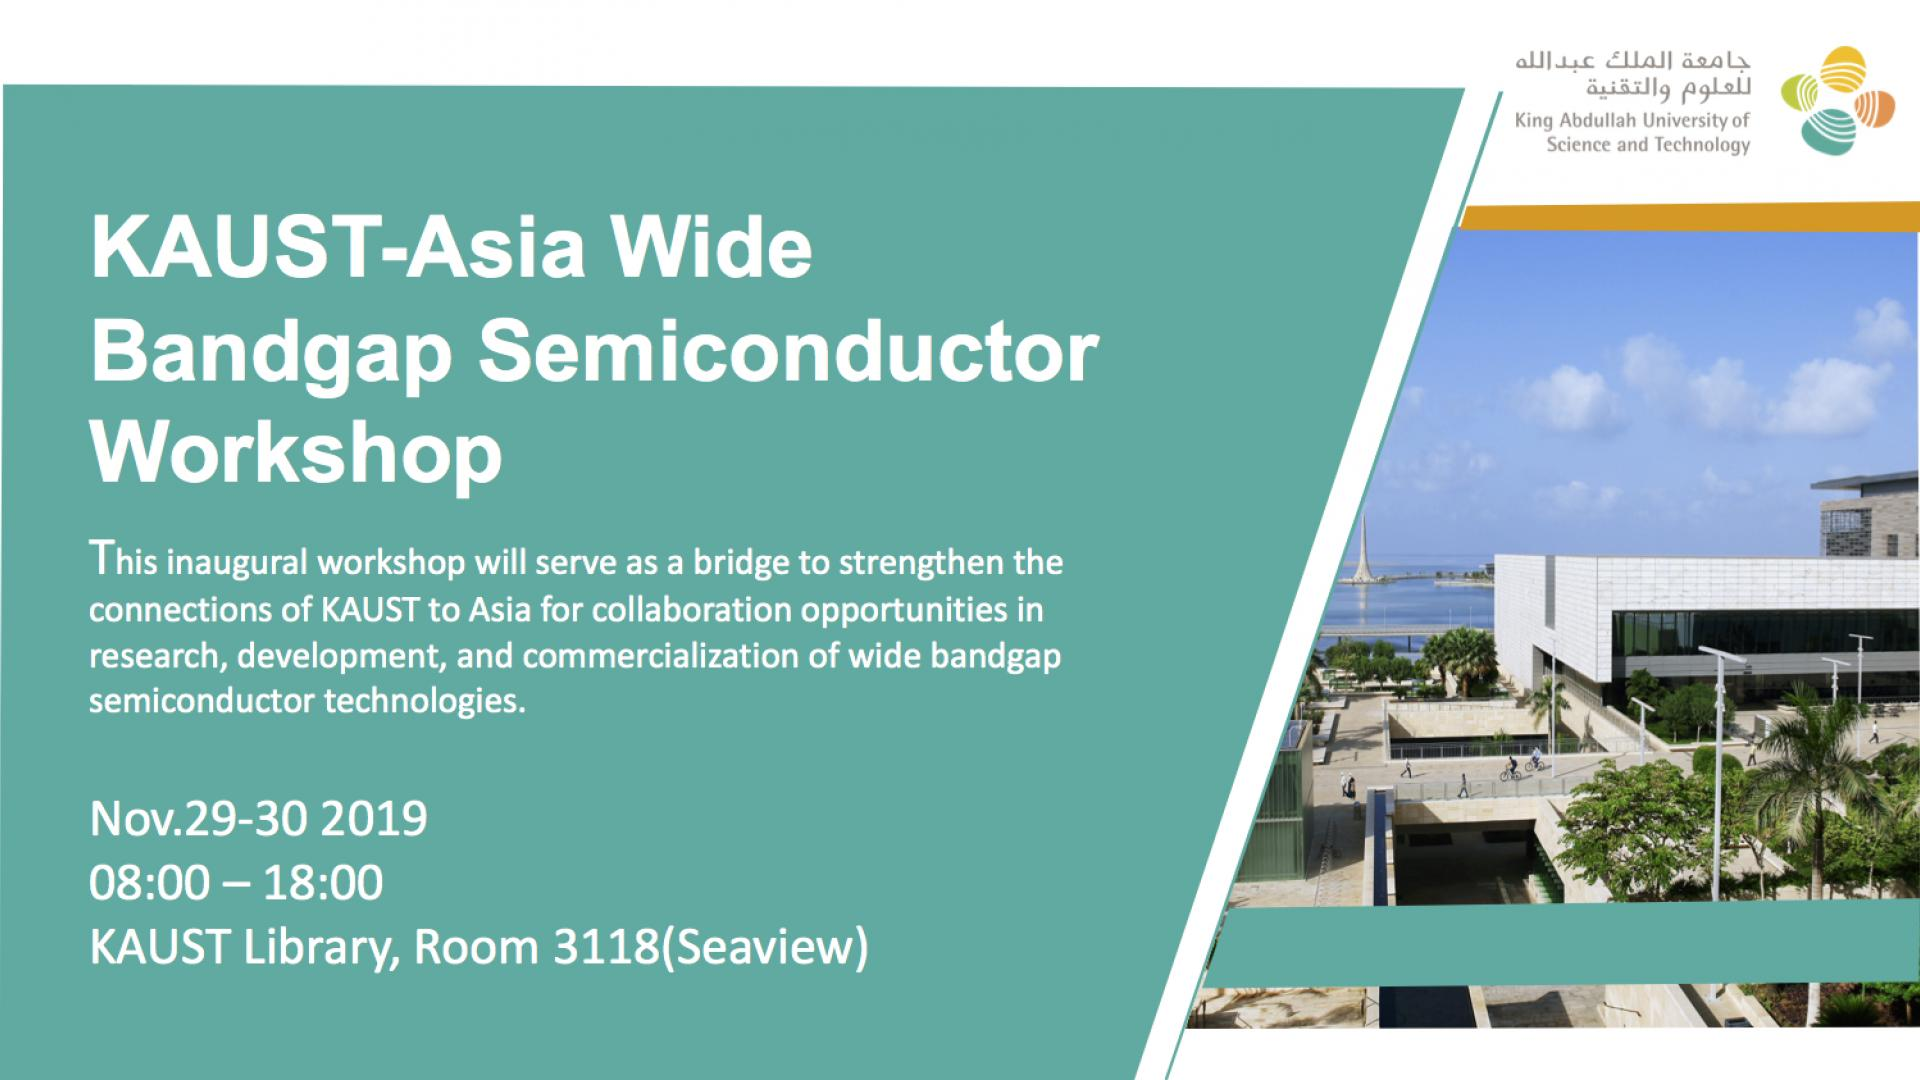 KAUST CEMSE EE KAUST-Asia Wide Bandgap semiconductor workshop